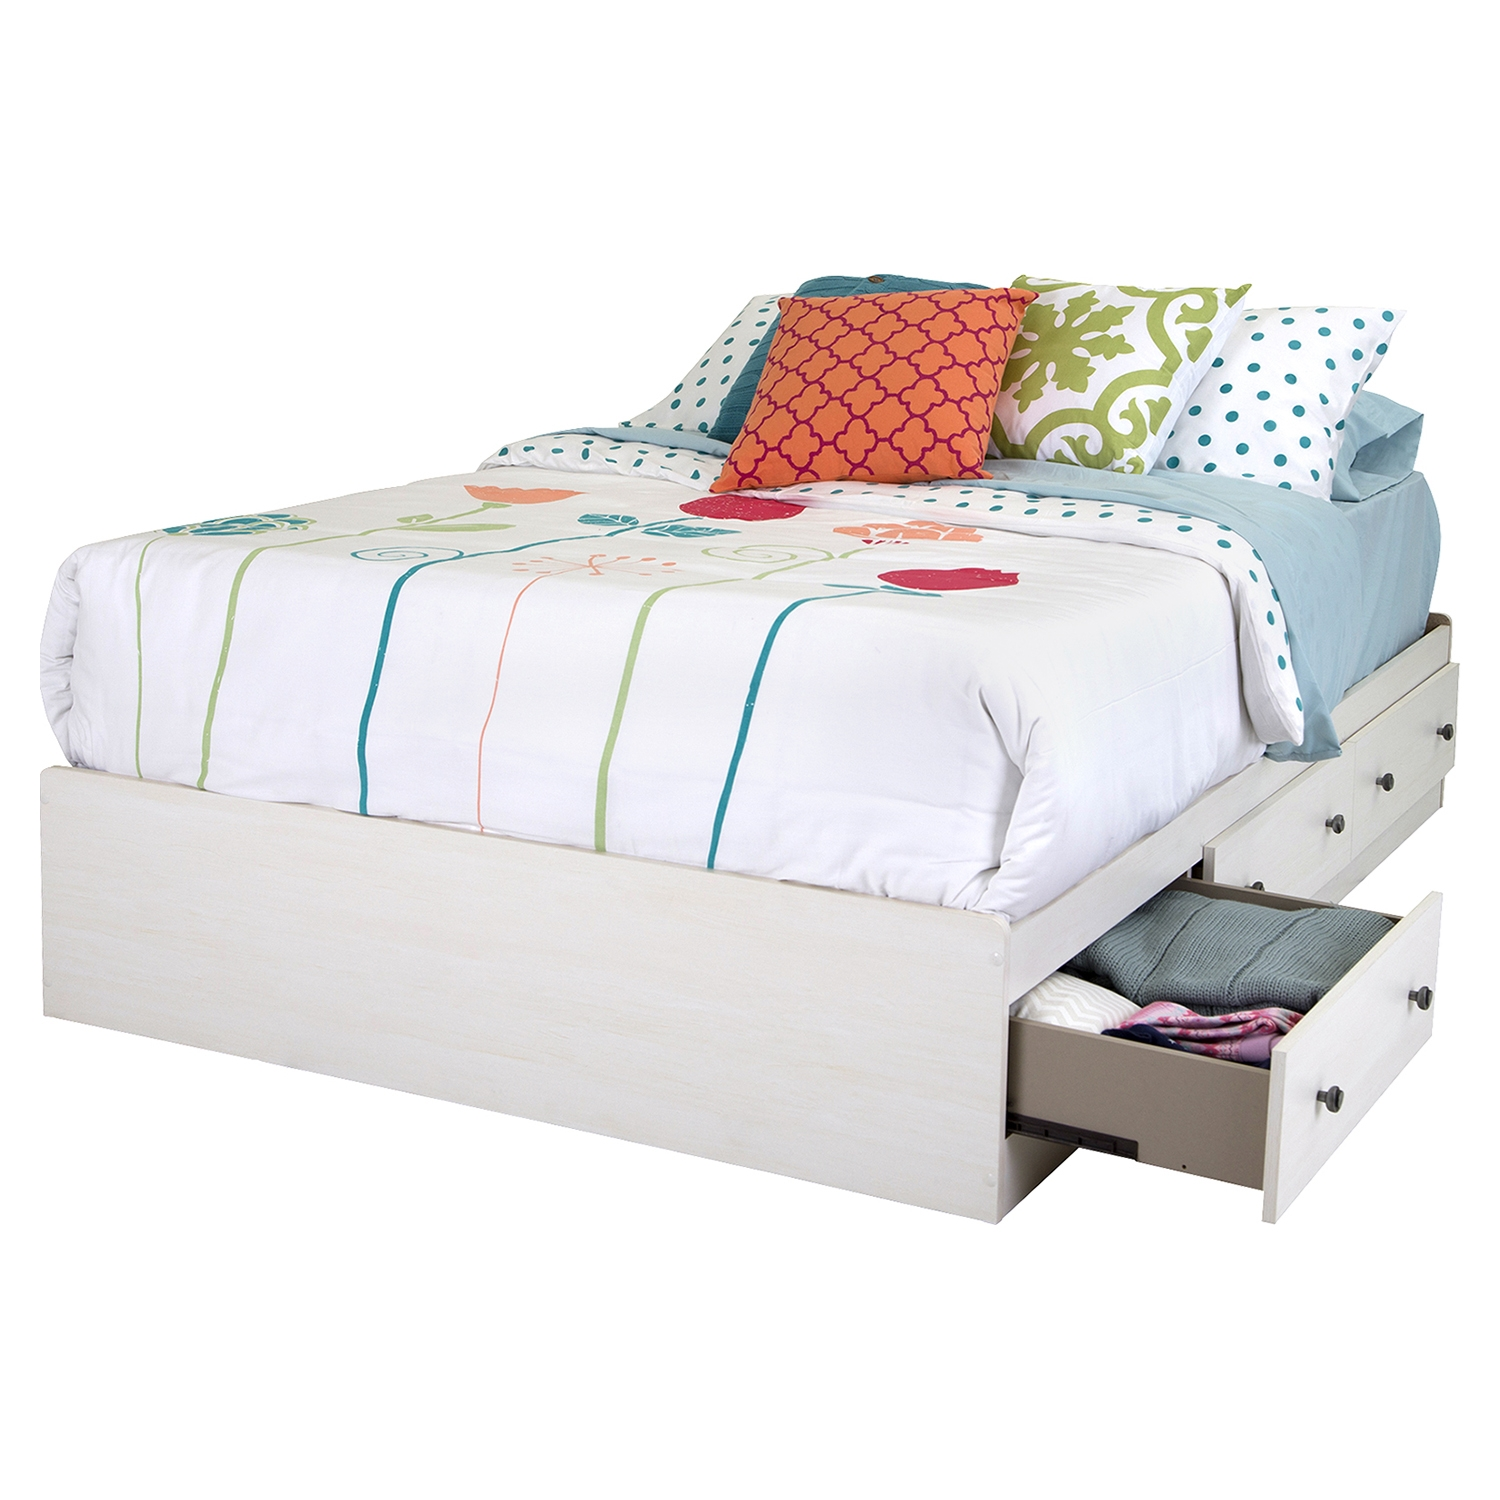 Country Poetry Full Mates Bedroom Set - 4 Drawers, White Wash - SS-9031211-BED-SET